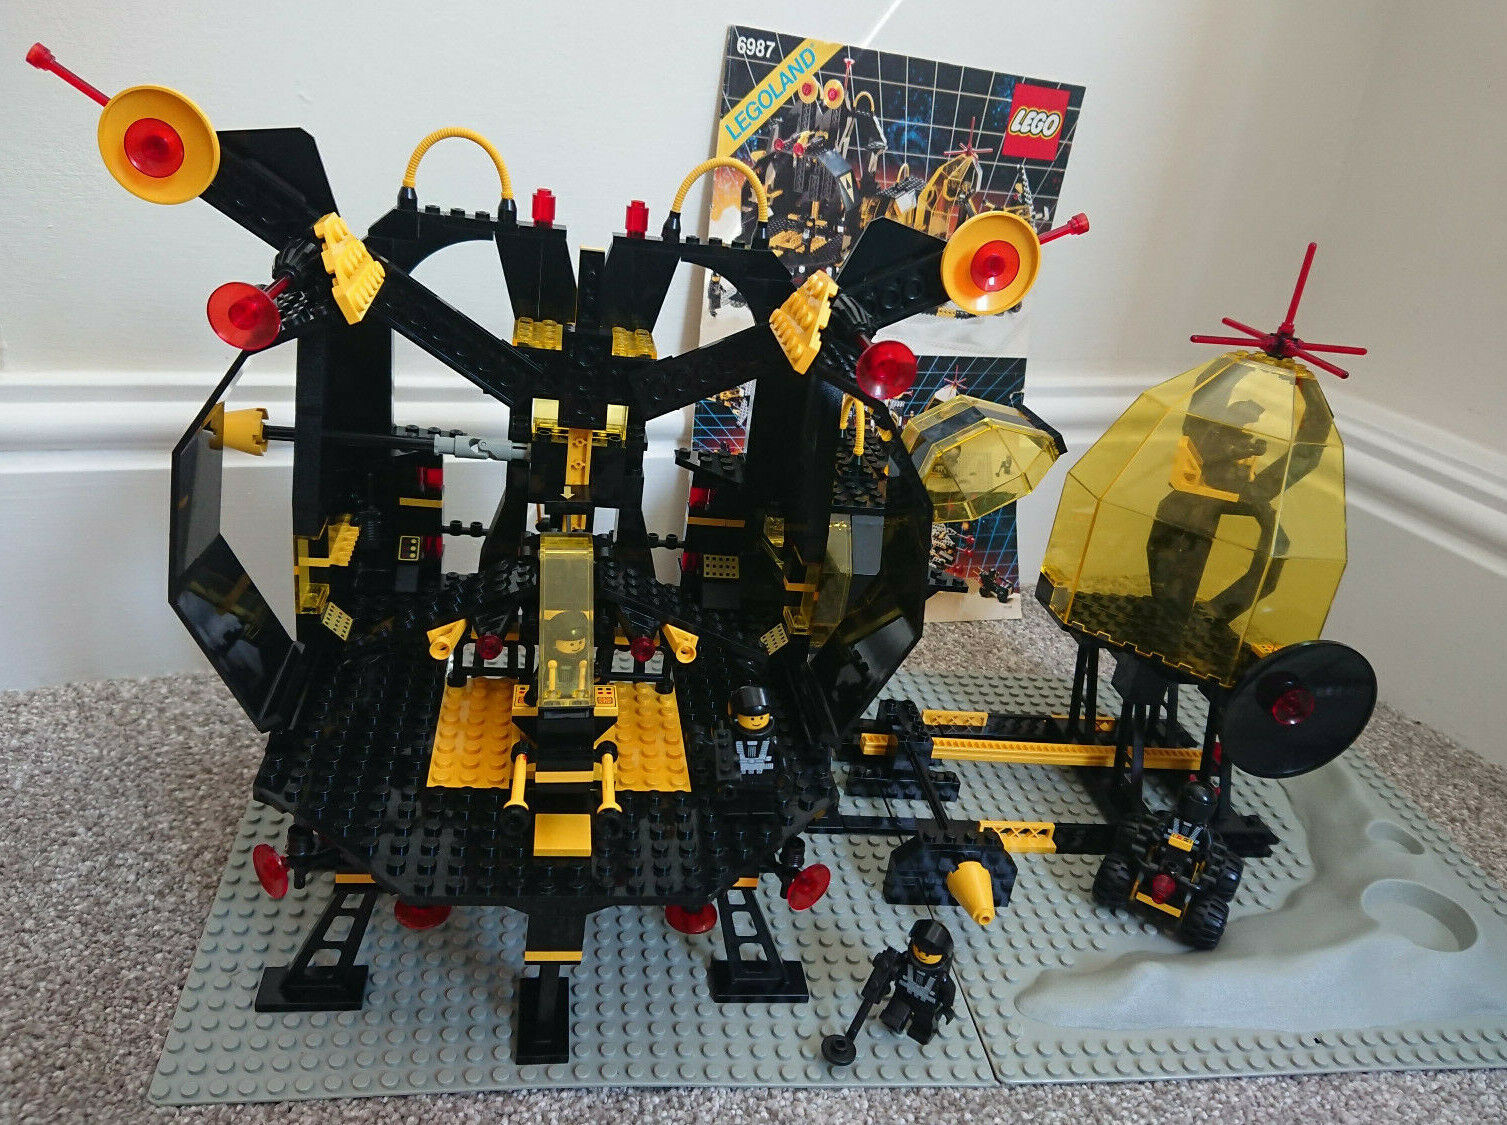 Lego Space 6987 - Message Intercept Base - 100% Complete with Instructions